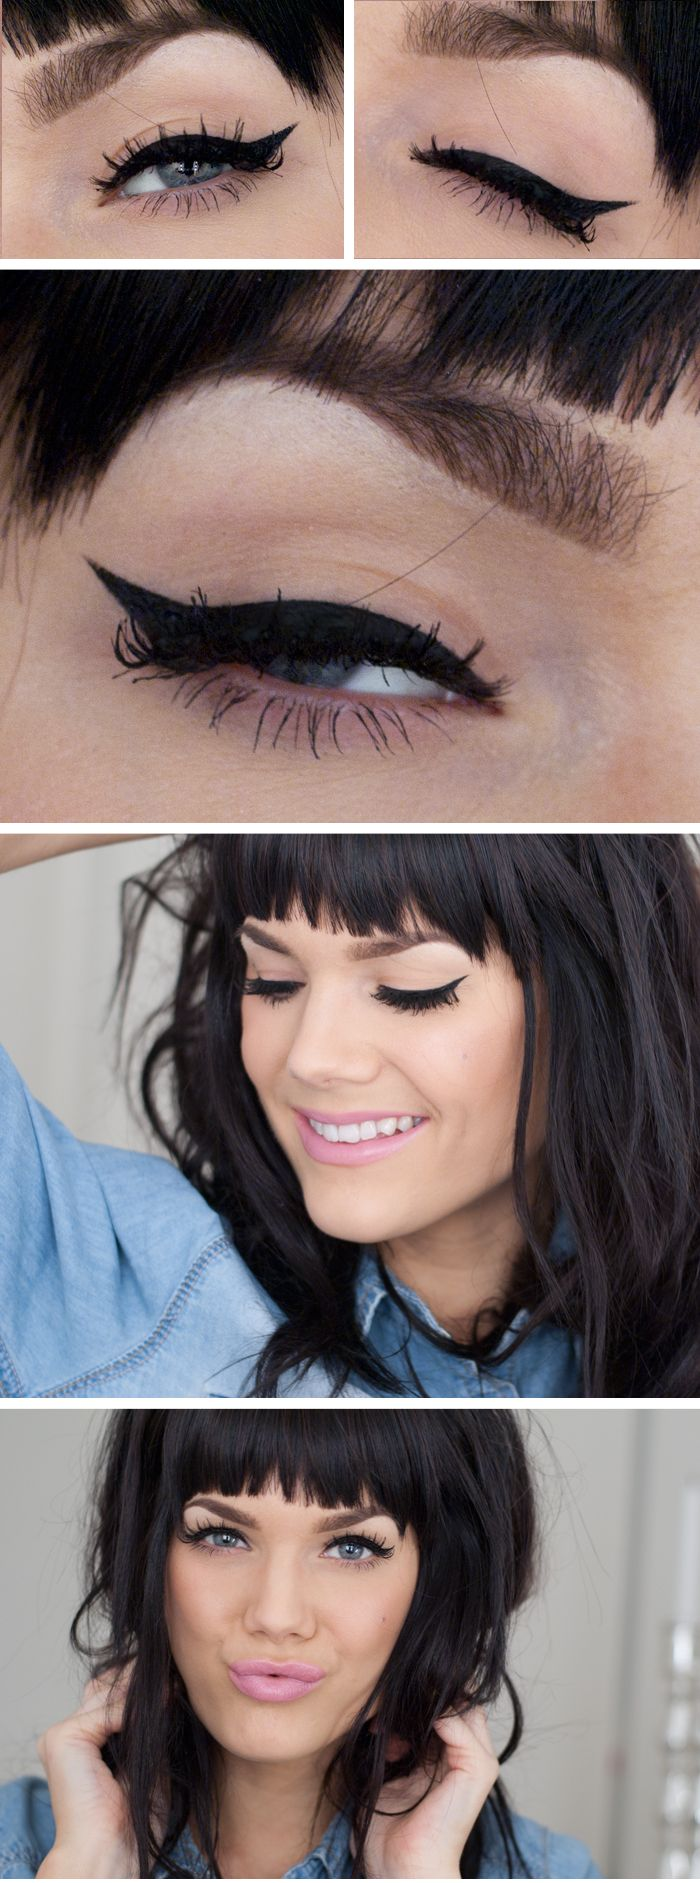 #Eyelinner Apply #Secrets, see on: http://mymakeupideas.com/how-to-apply-eyeliner-tips-and-ideas/